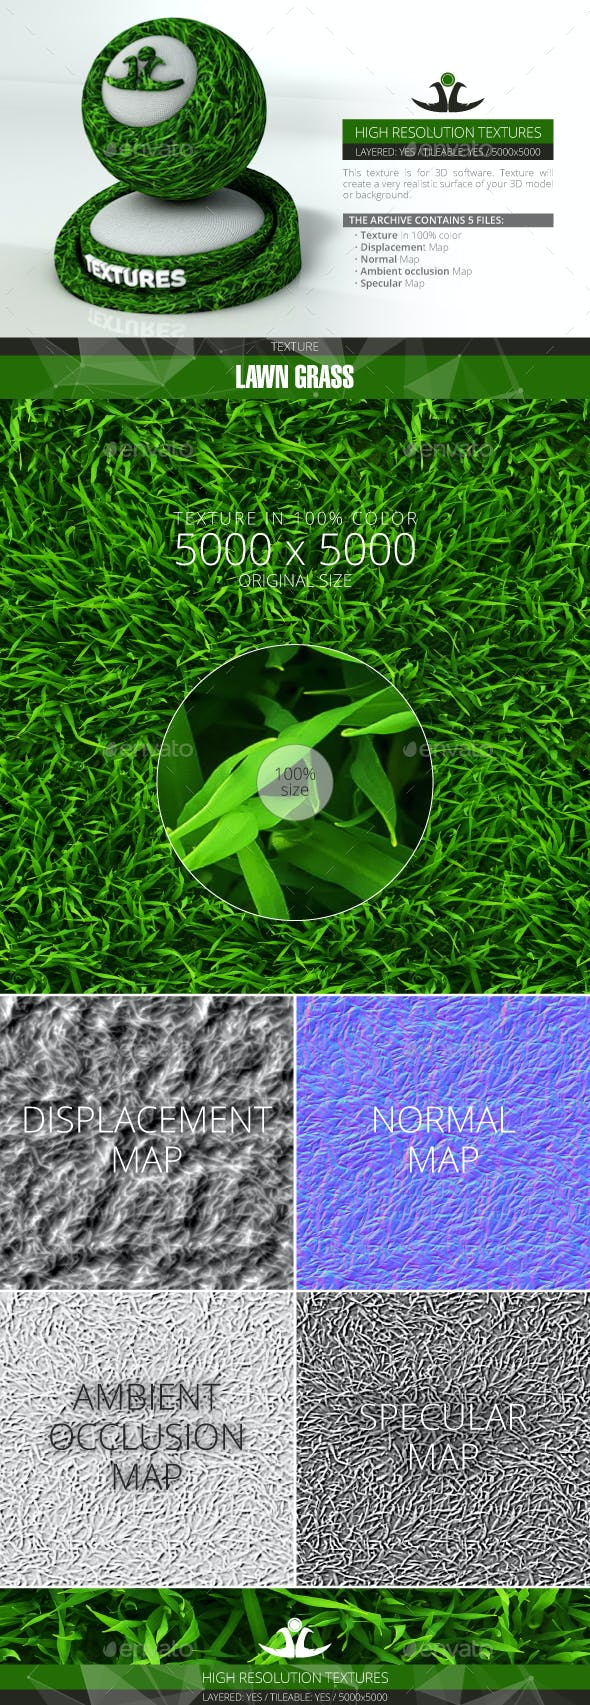 Lawn Grass 6 - 3DOcean Item for Sale